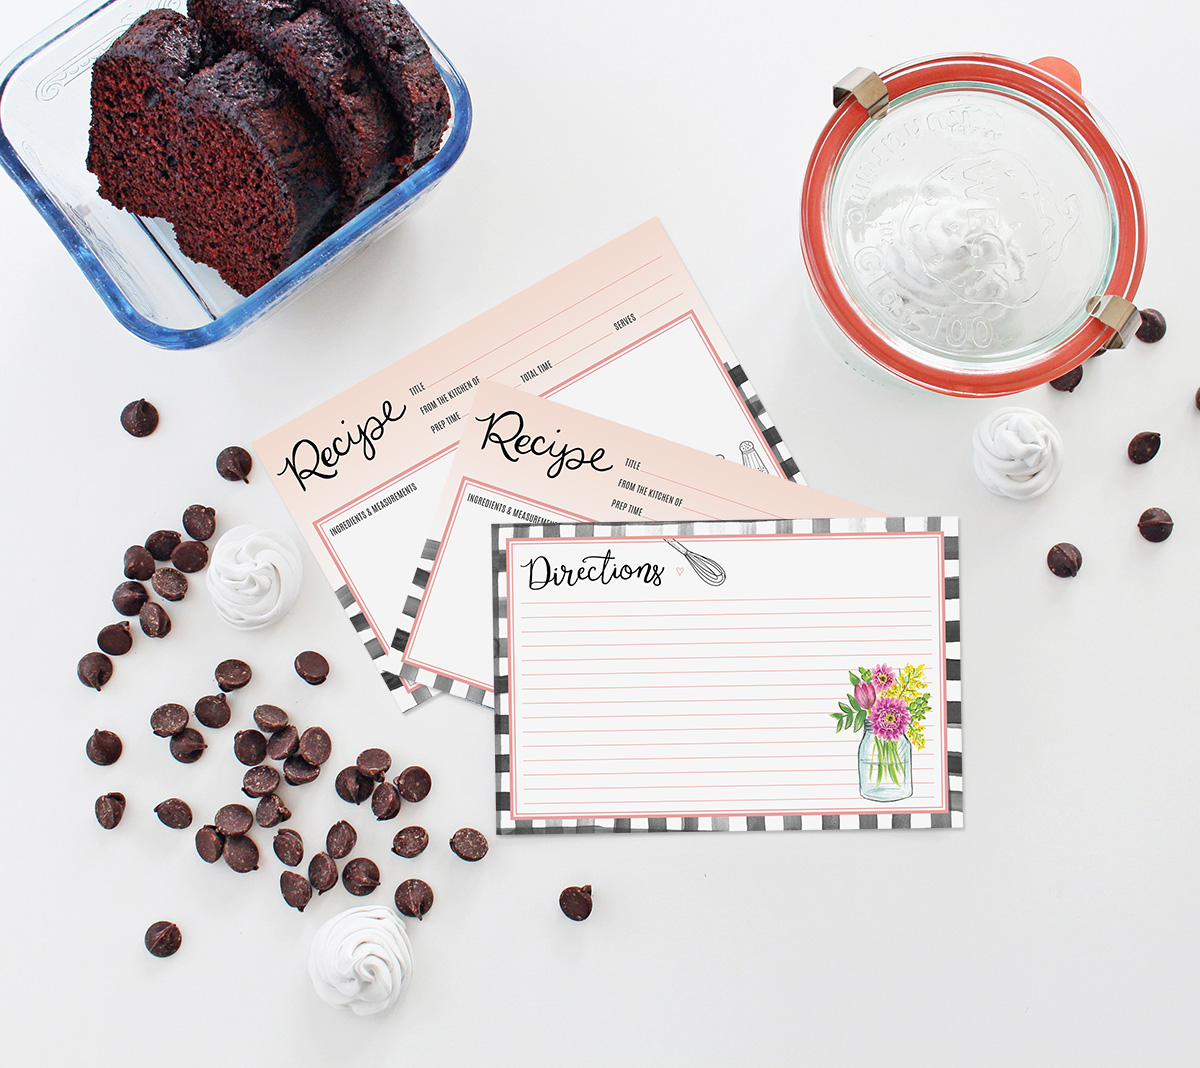 New farmhouse gingham recipe cards by Lily & Val are the perfect addition to your recipe card box